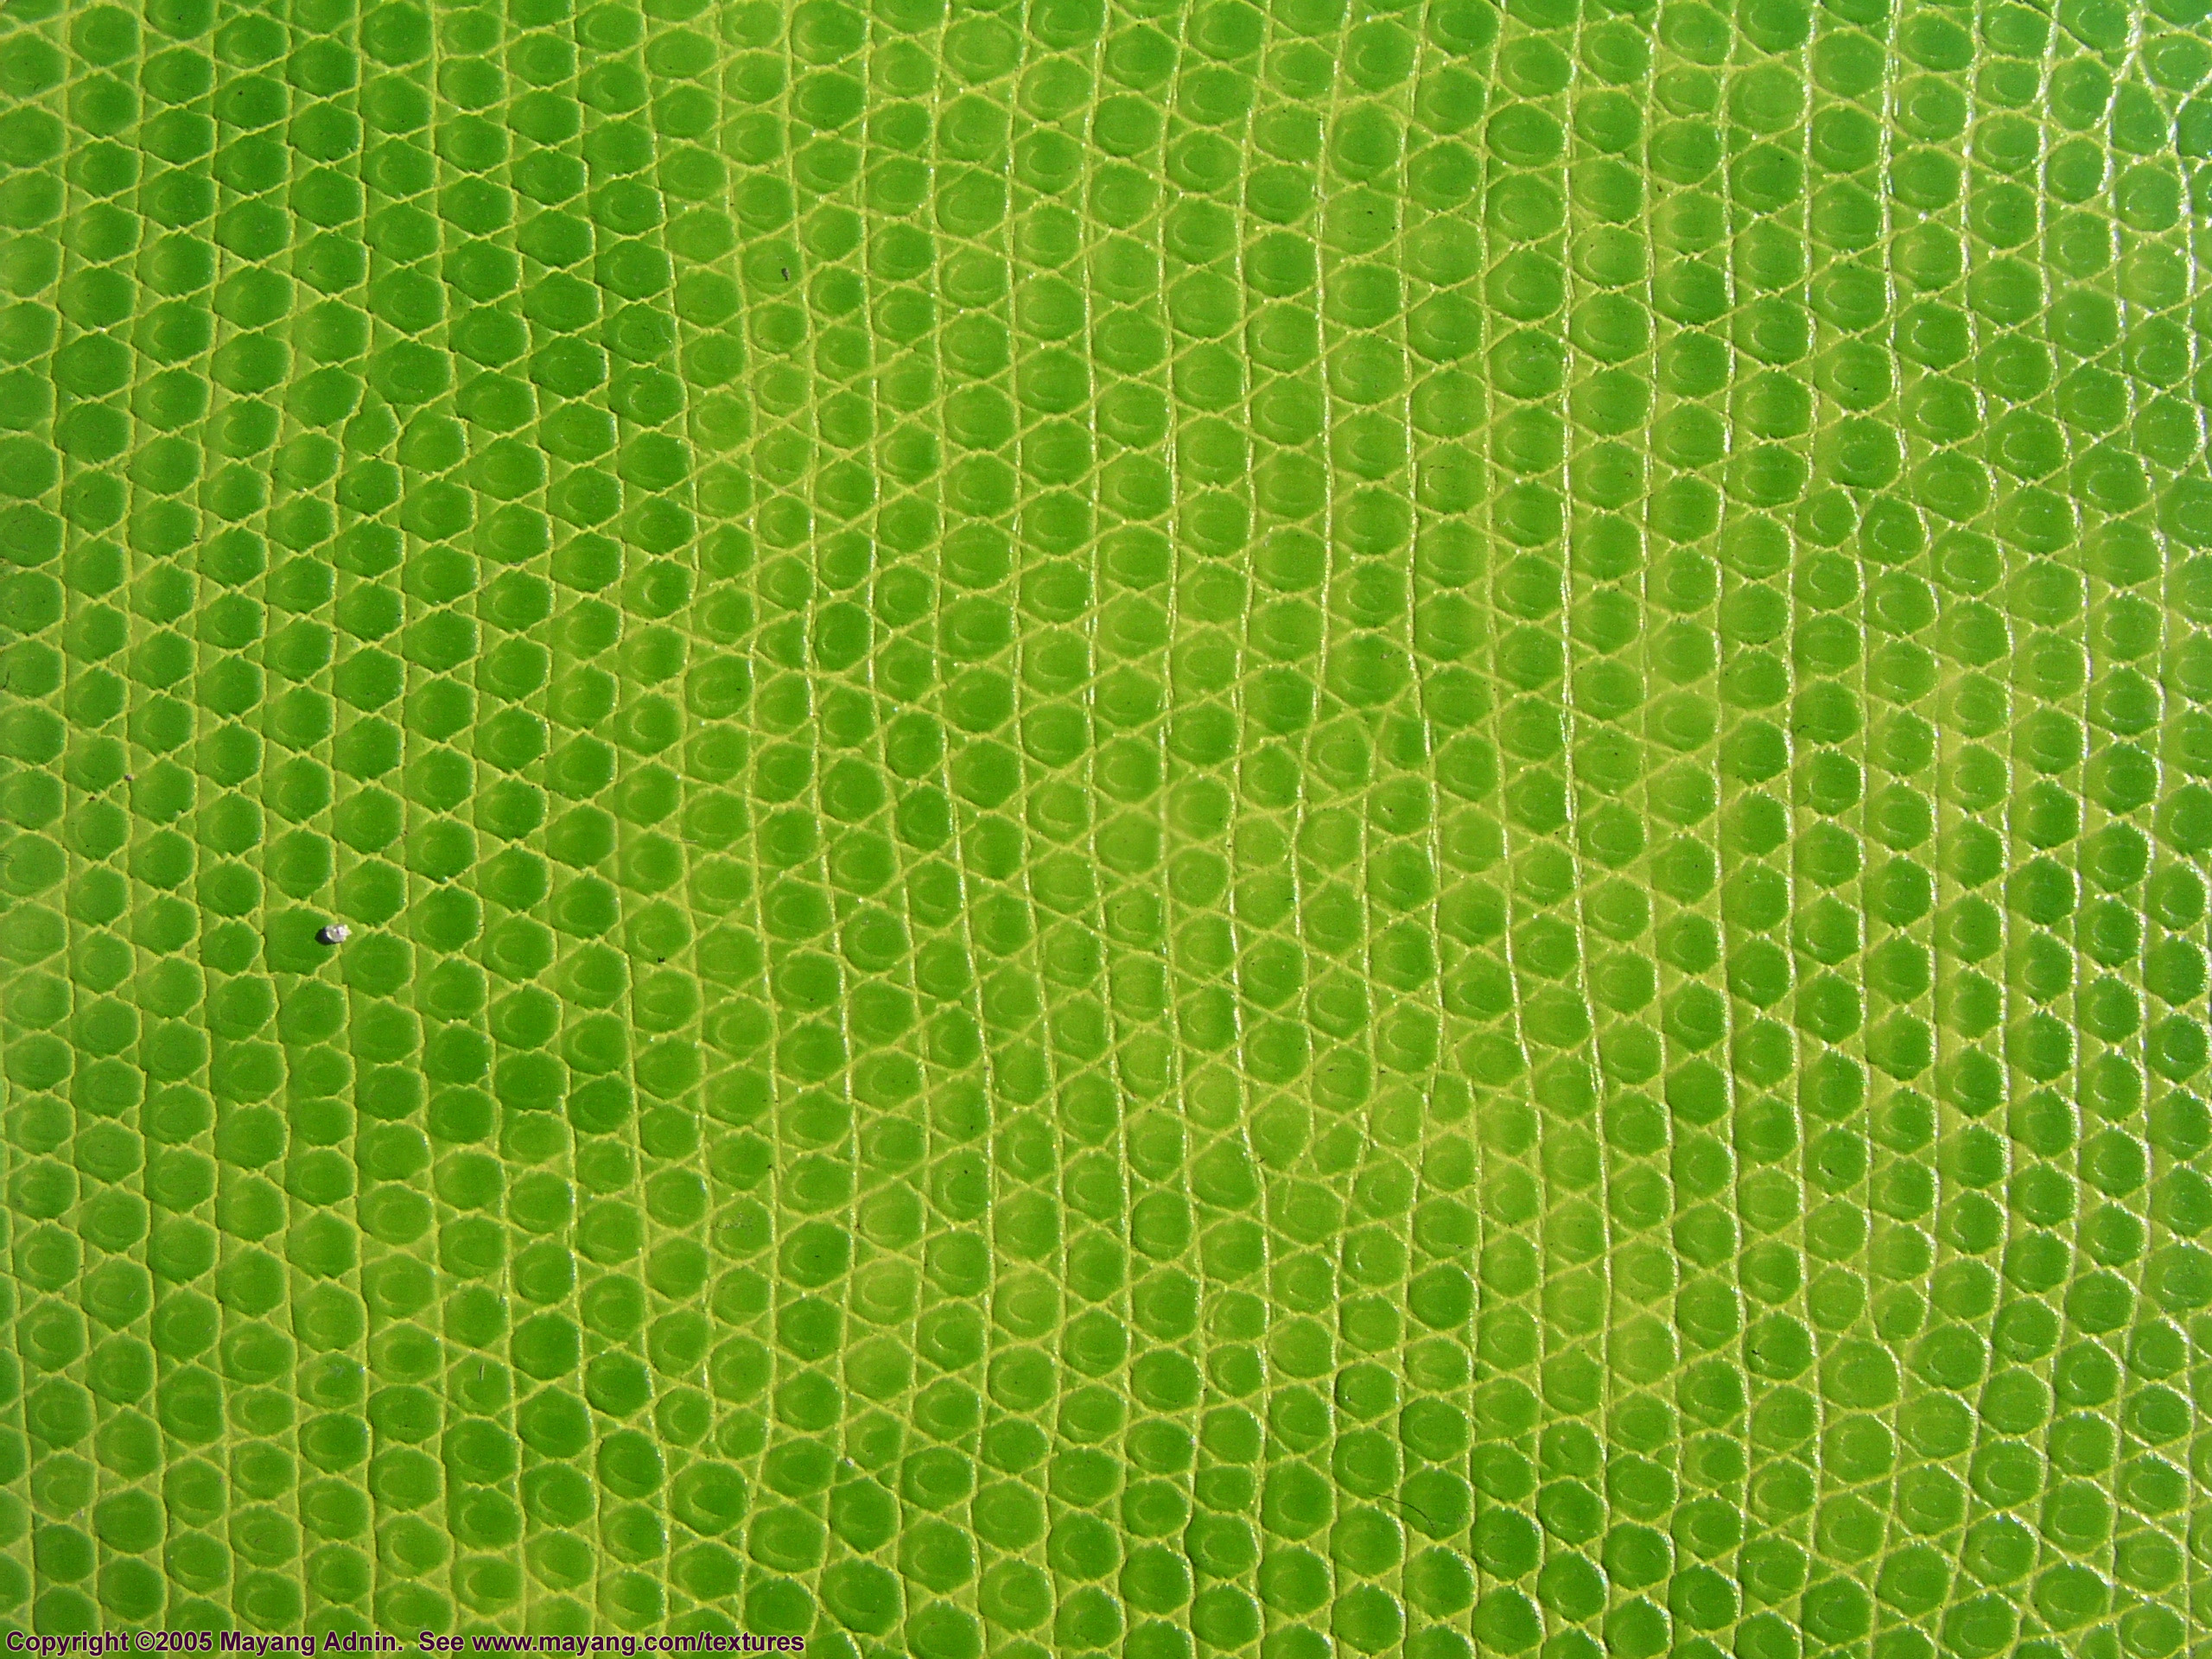 green snake leather texture, background, leather  background, leather background